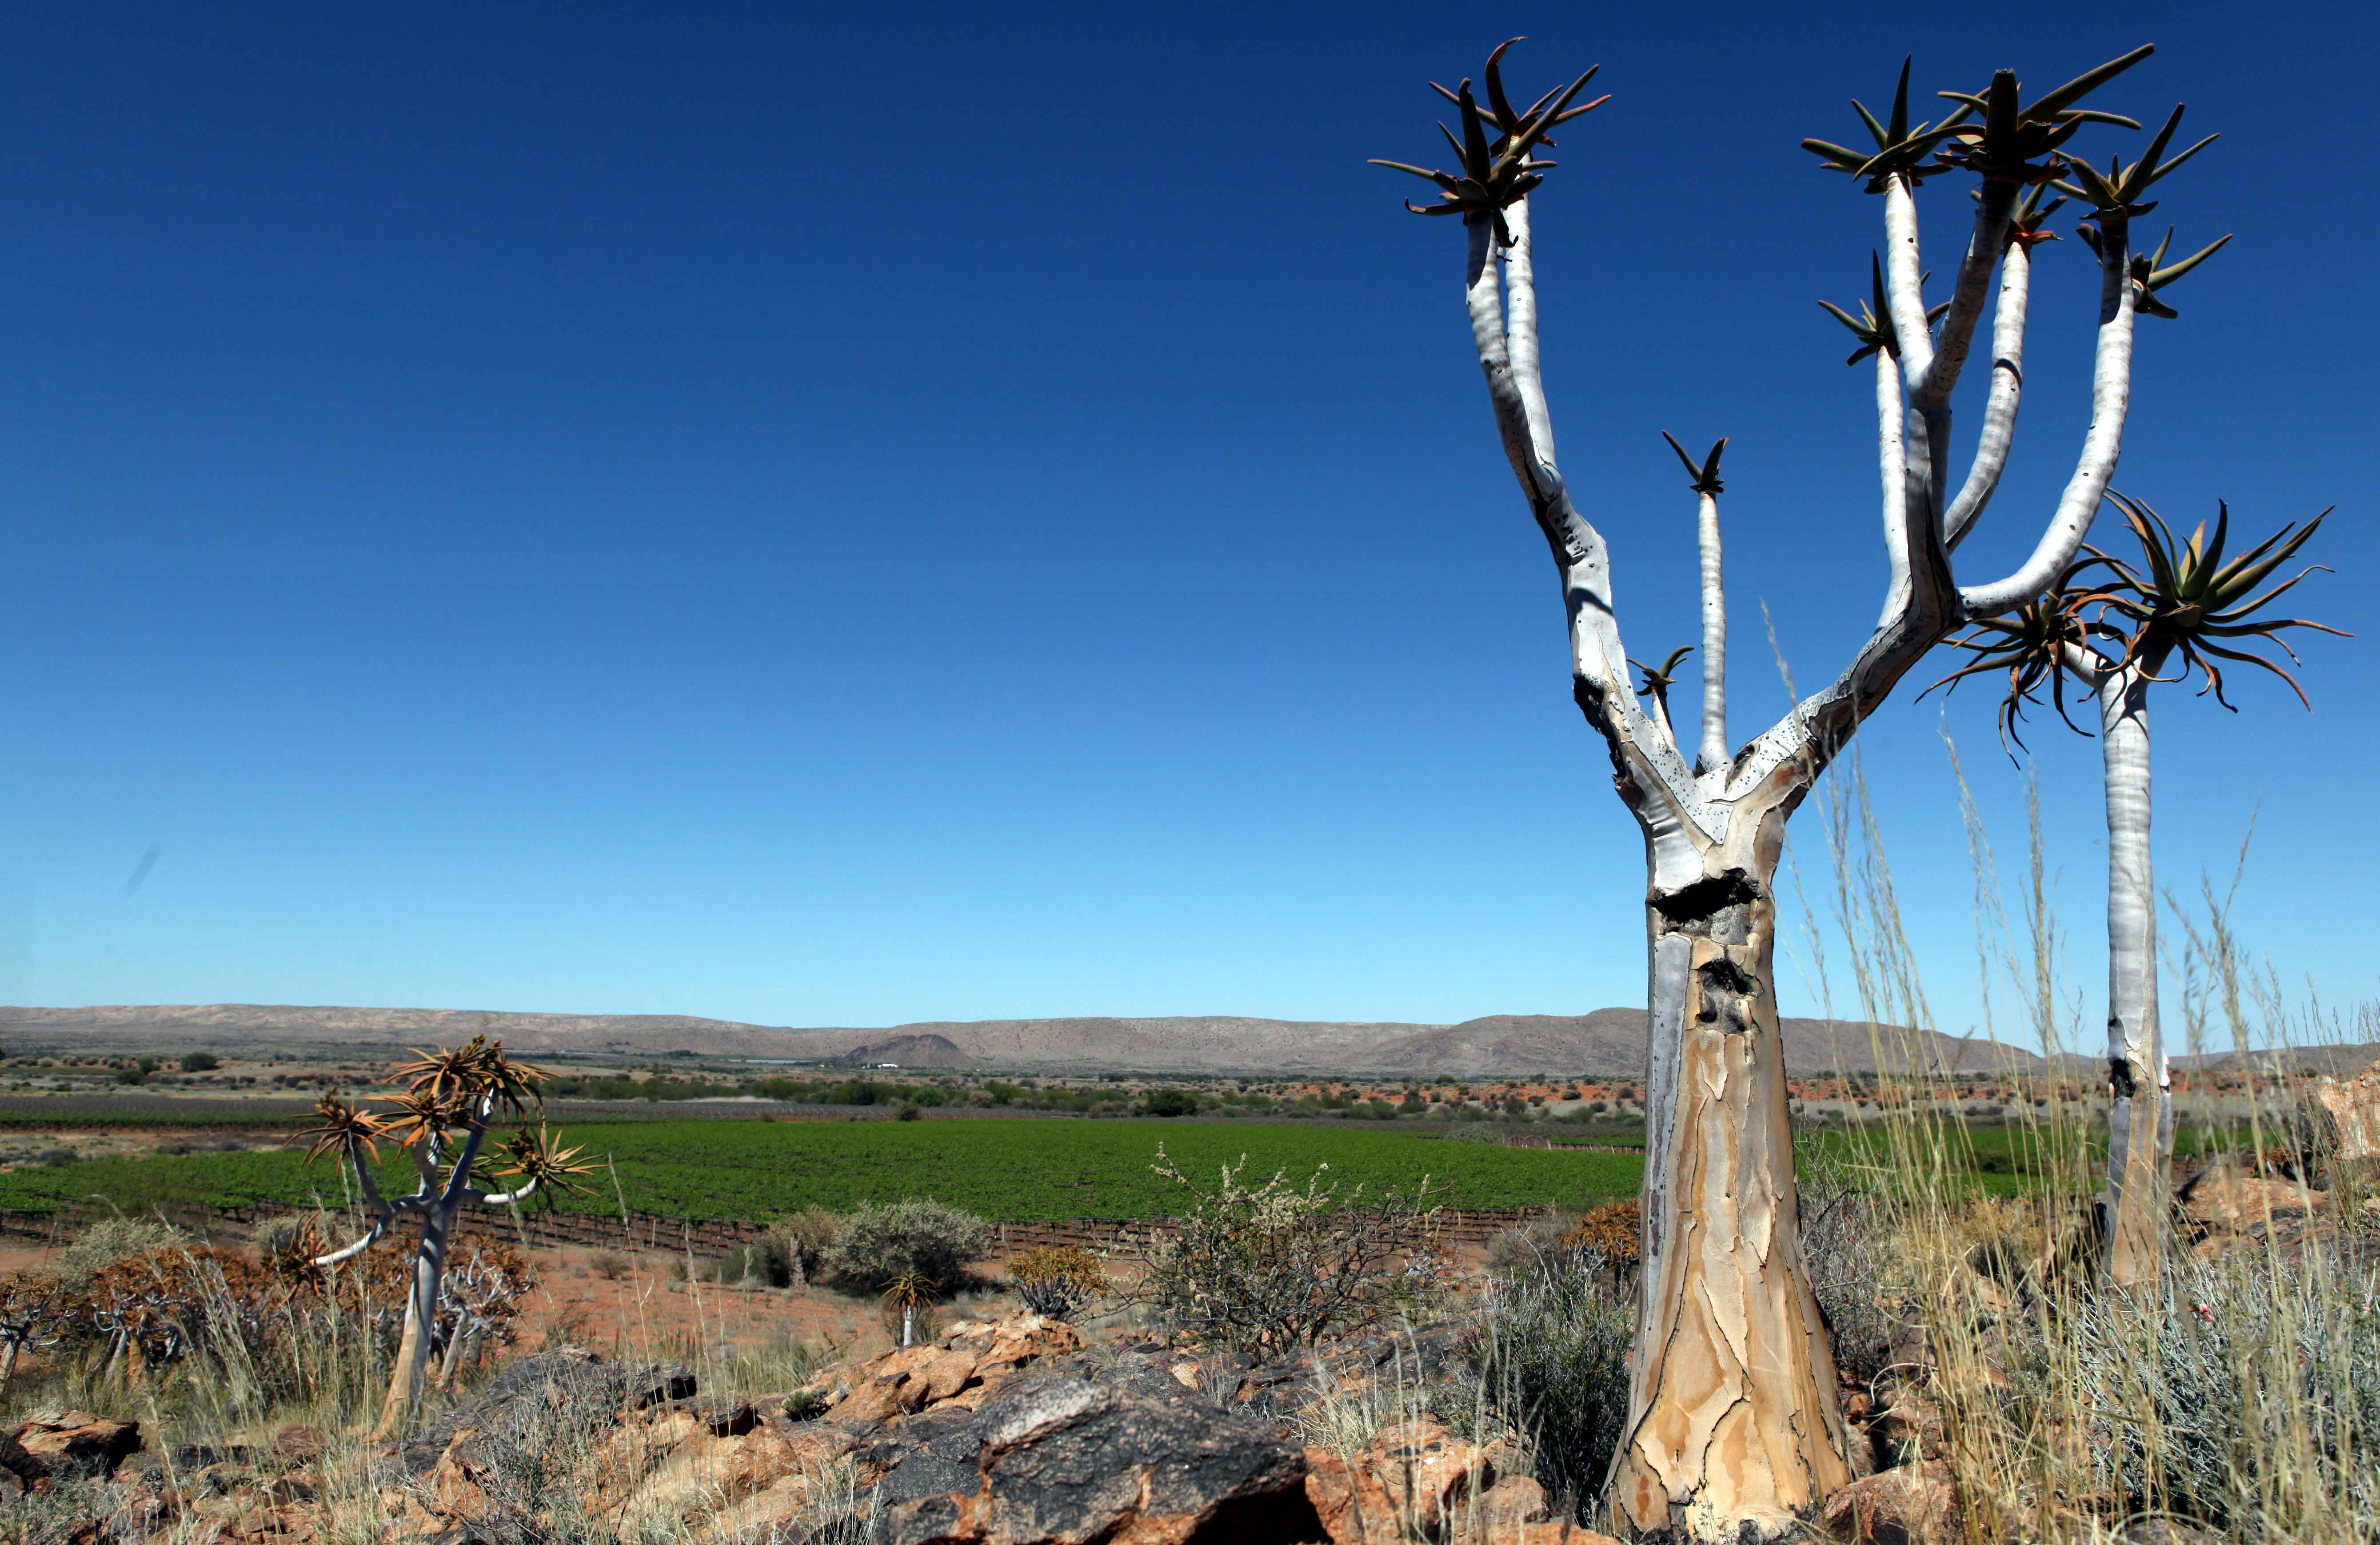 Off the beaten track. Winelands of the Orange River.